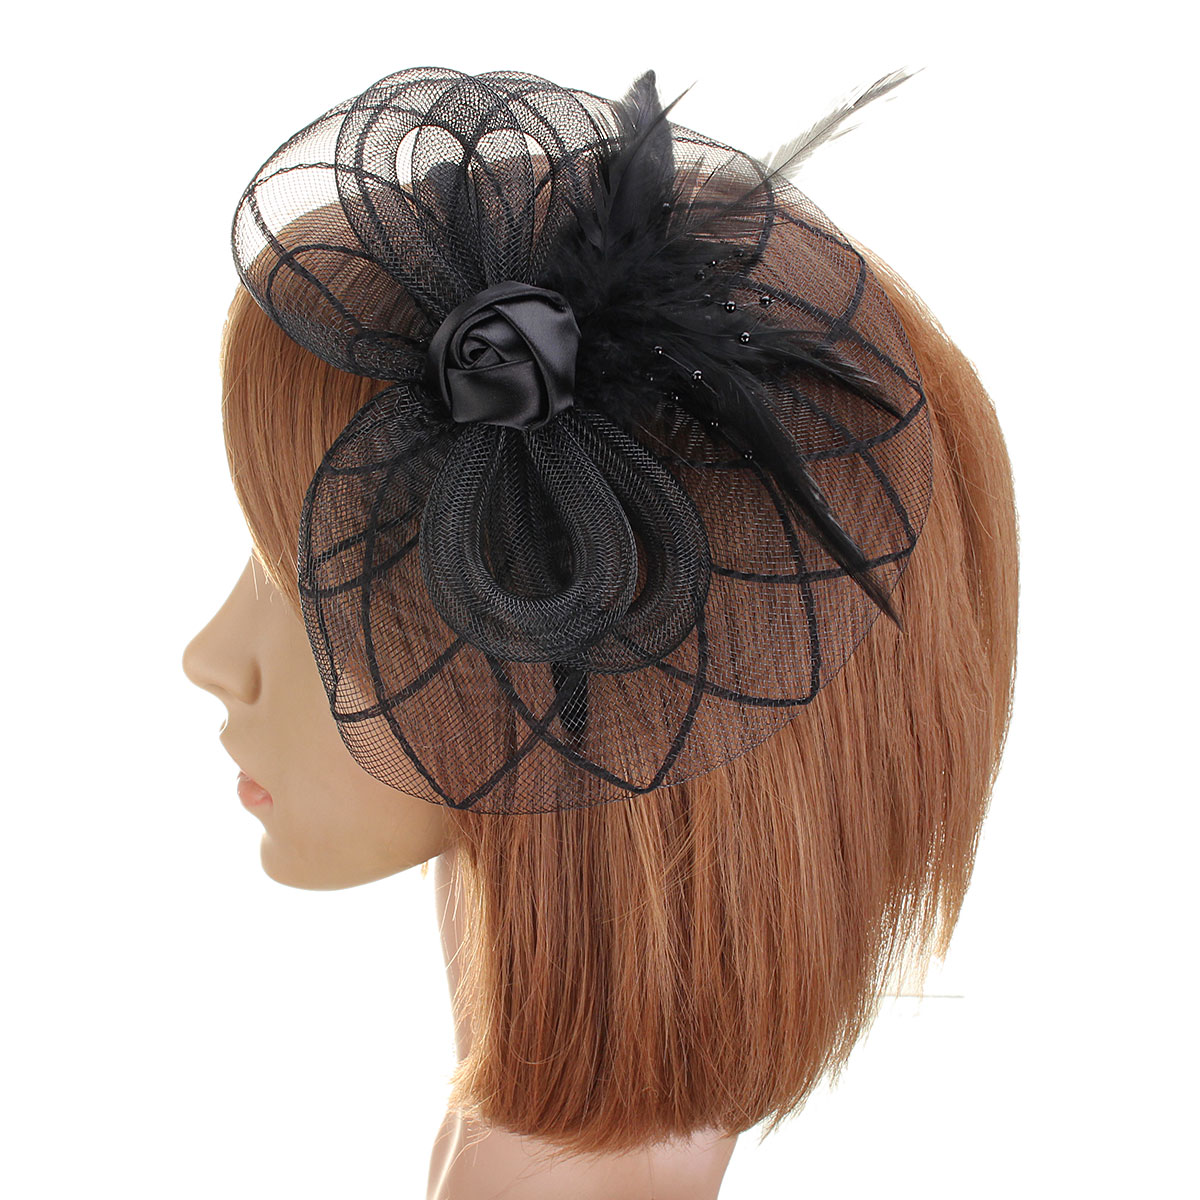 Bride Women Flower Rose Feather Bead Mesh Fascinator Wedding Cocktail Party Headpieces